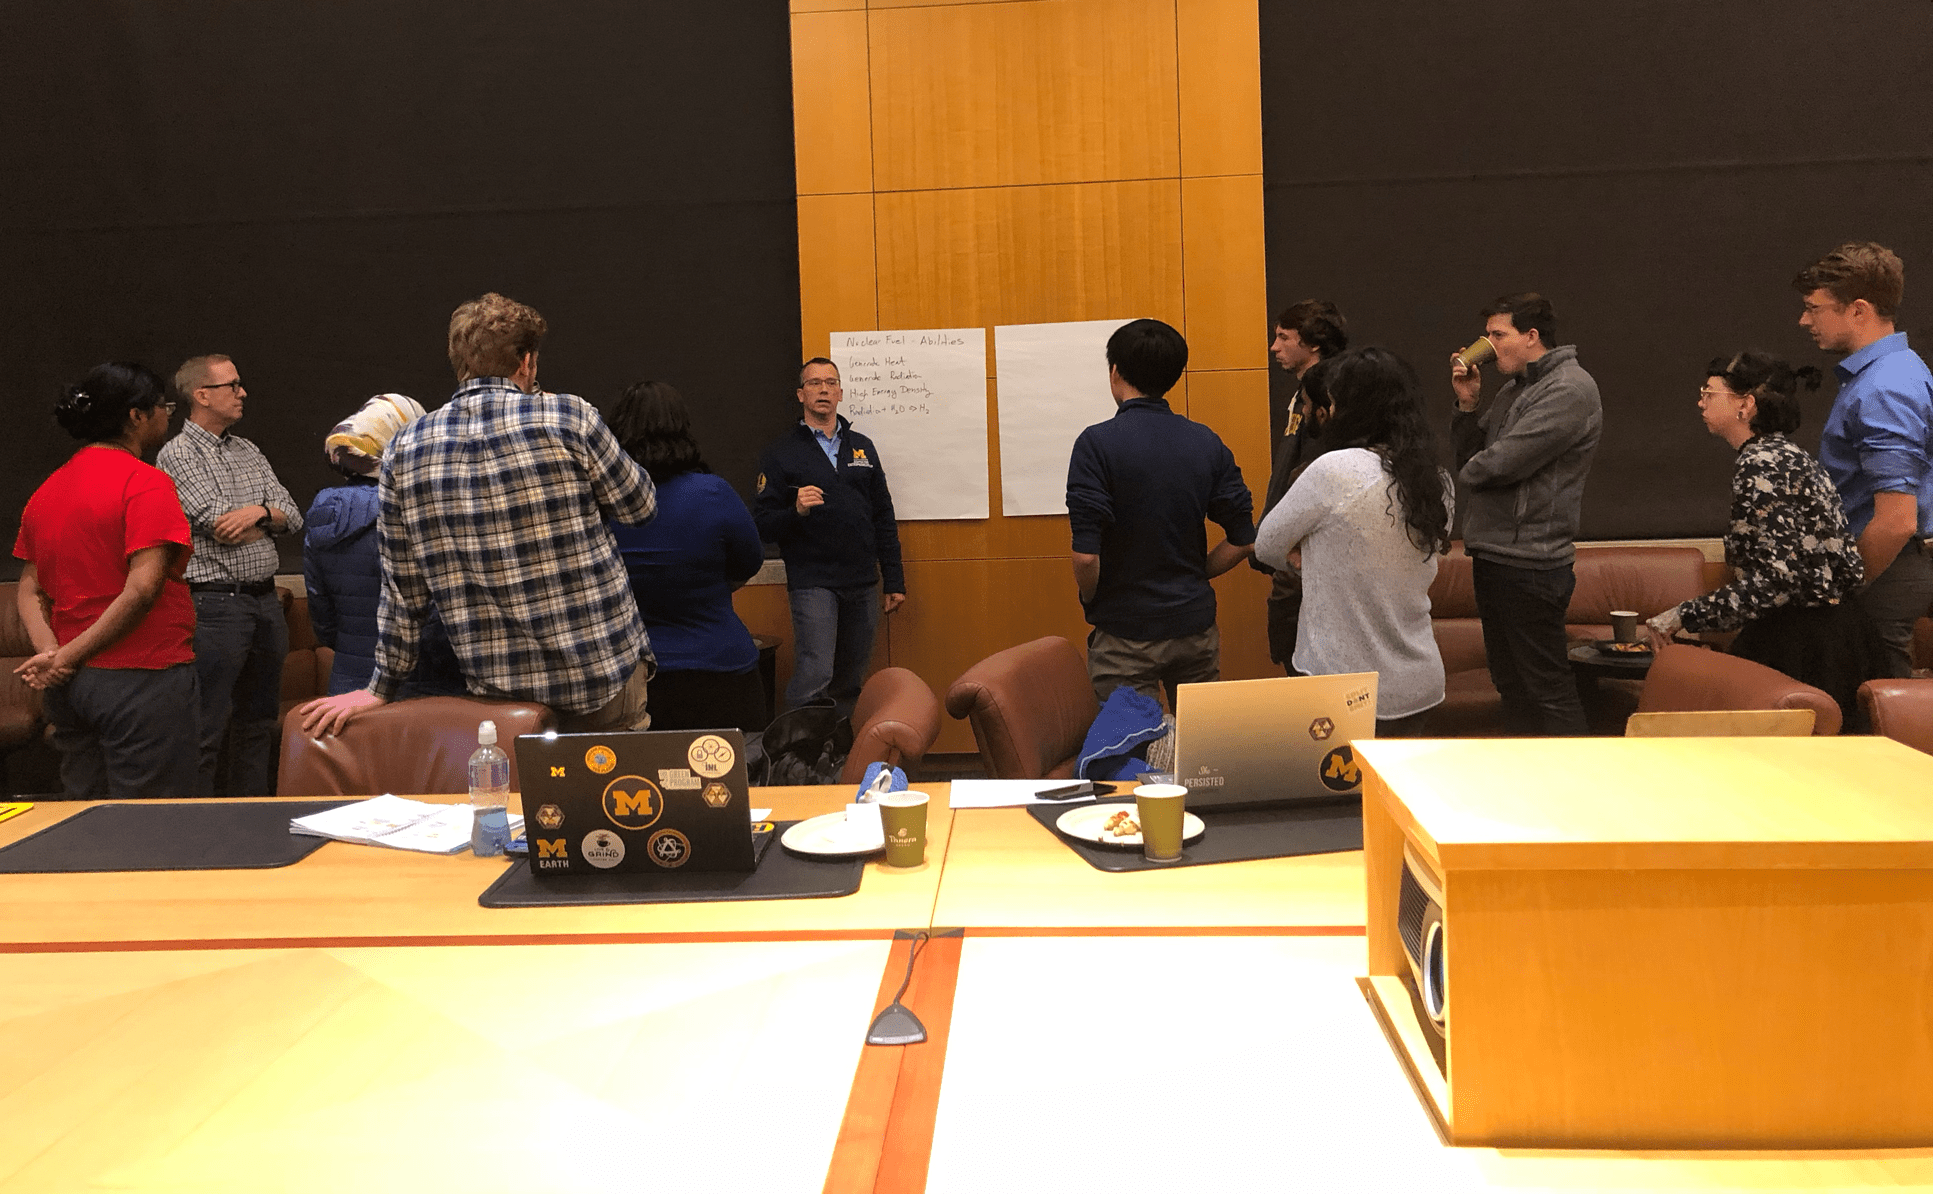 Jonathan Fay workshopping with students for nuclear challenge